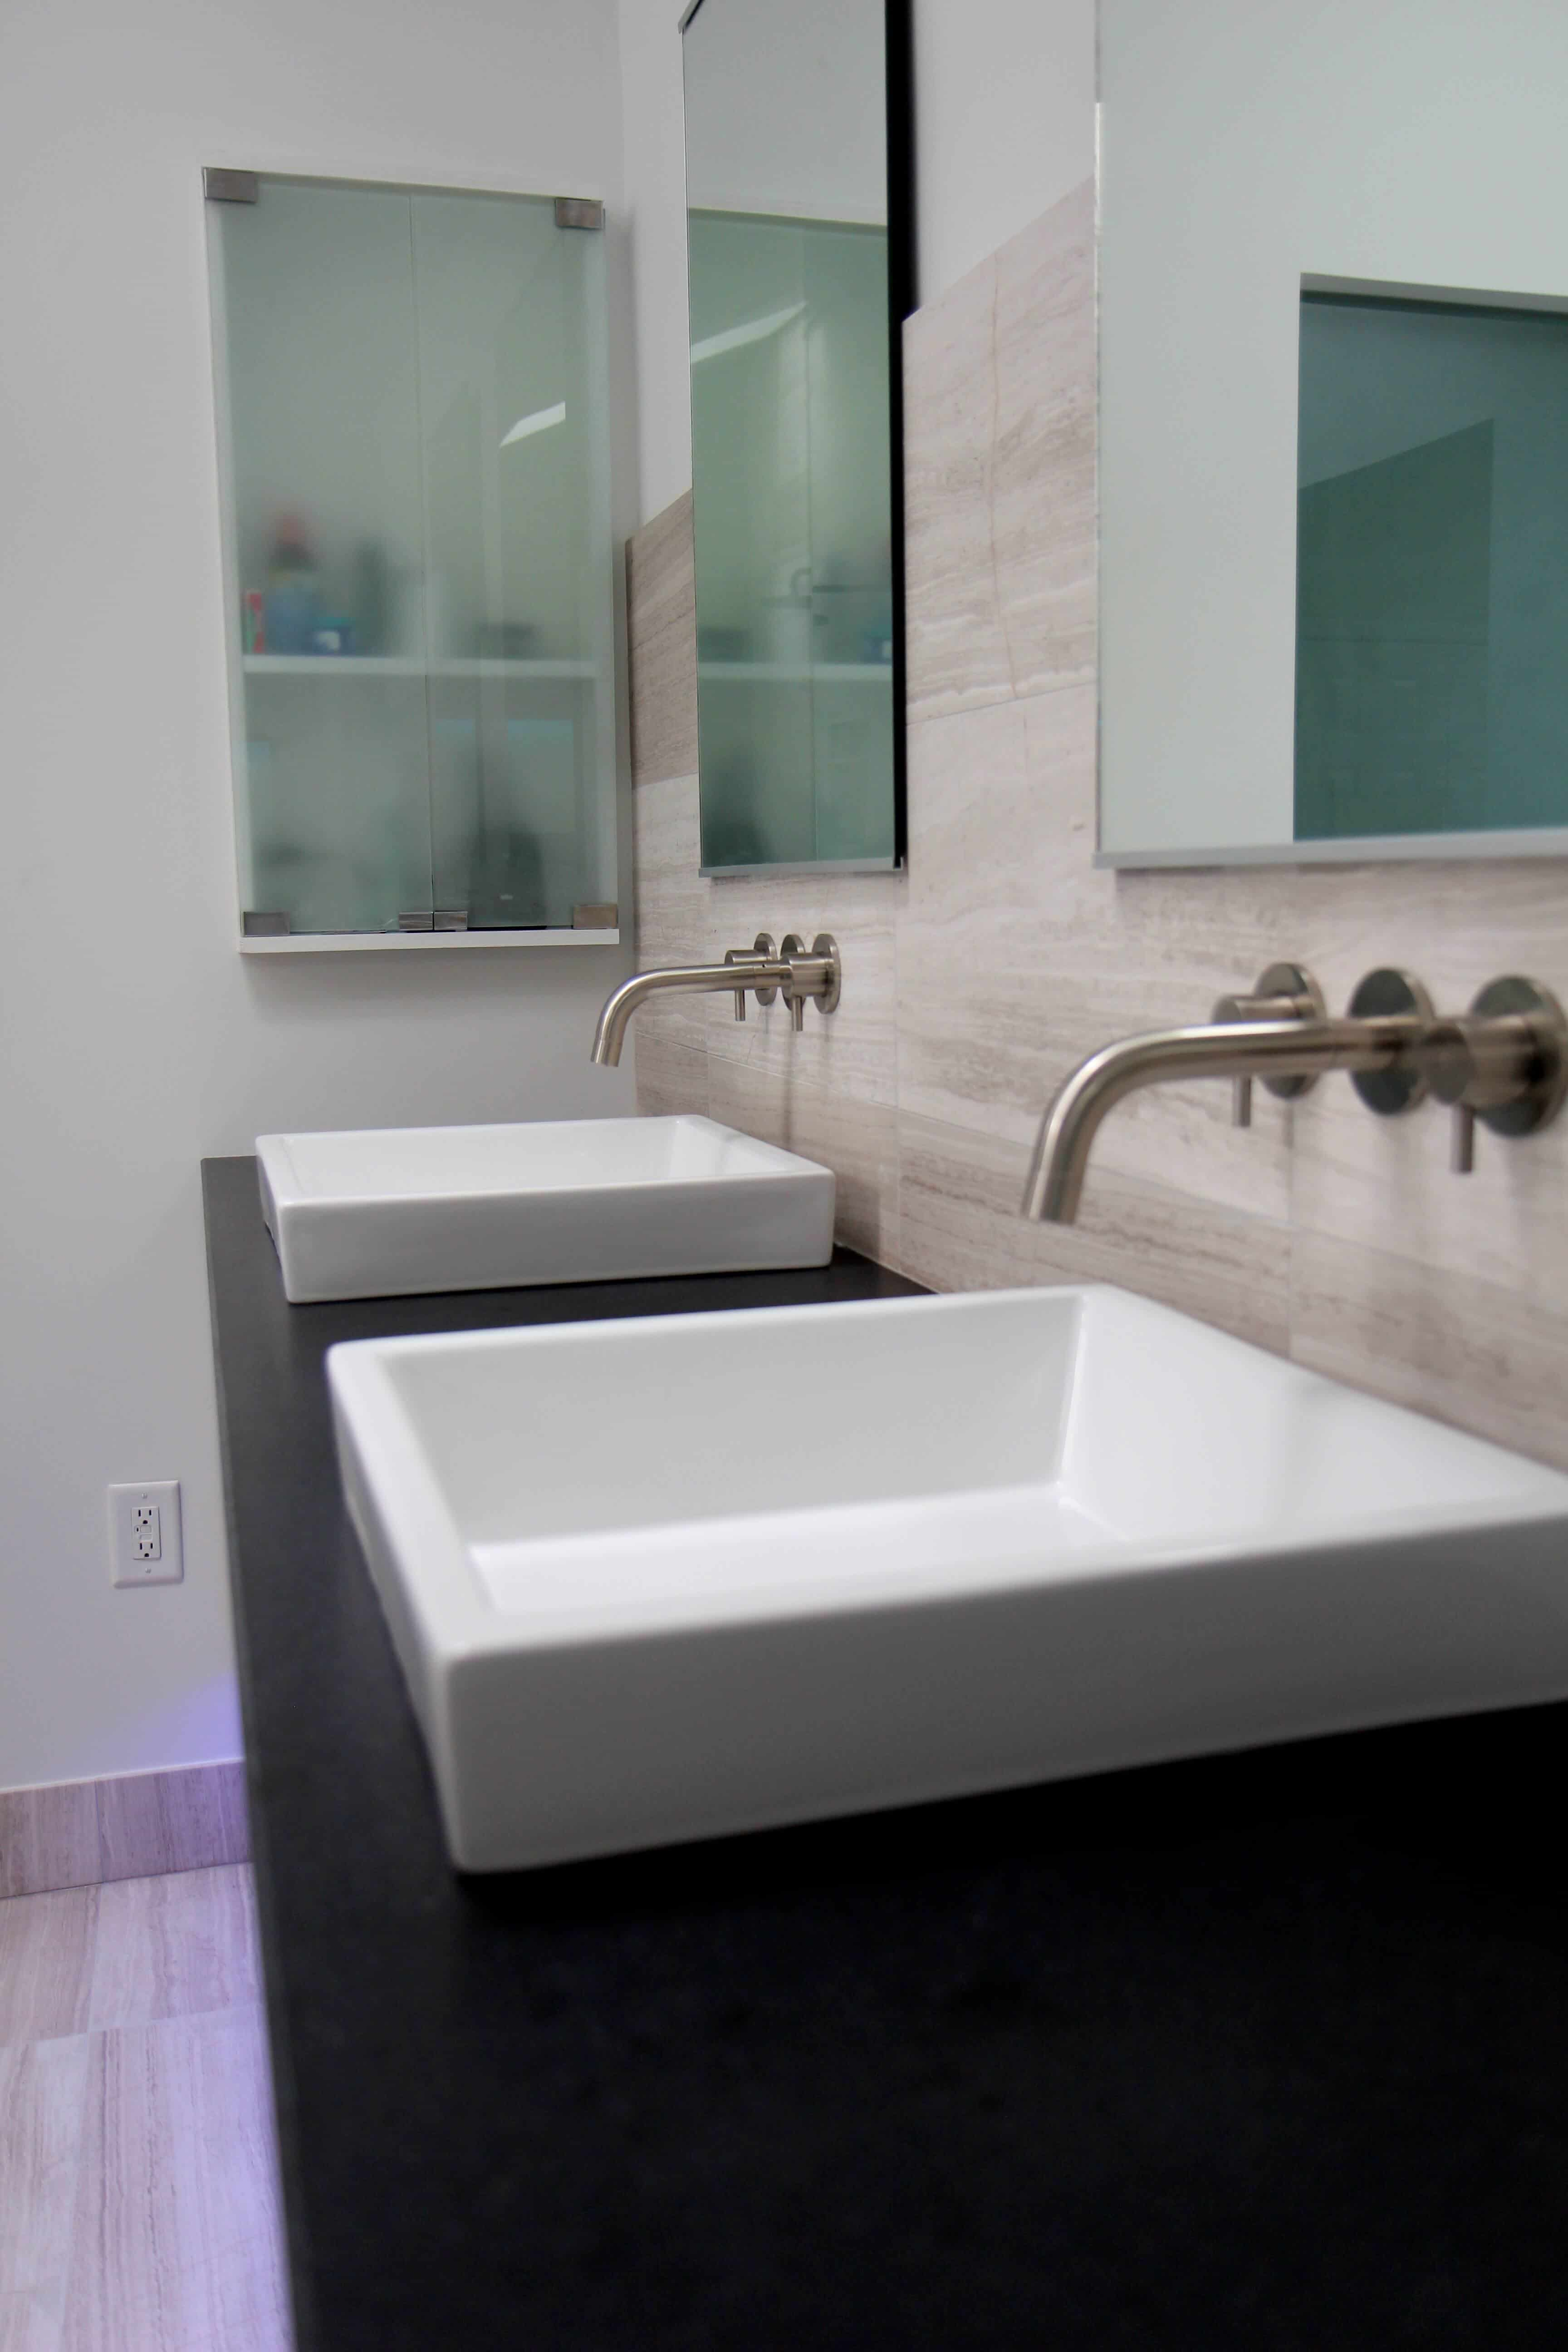 A closer look at the dual vessel sinks with faucets extending from the tile backsplash. Each sink has its own mirror above it.